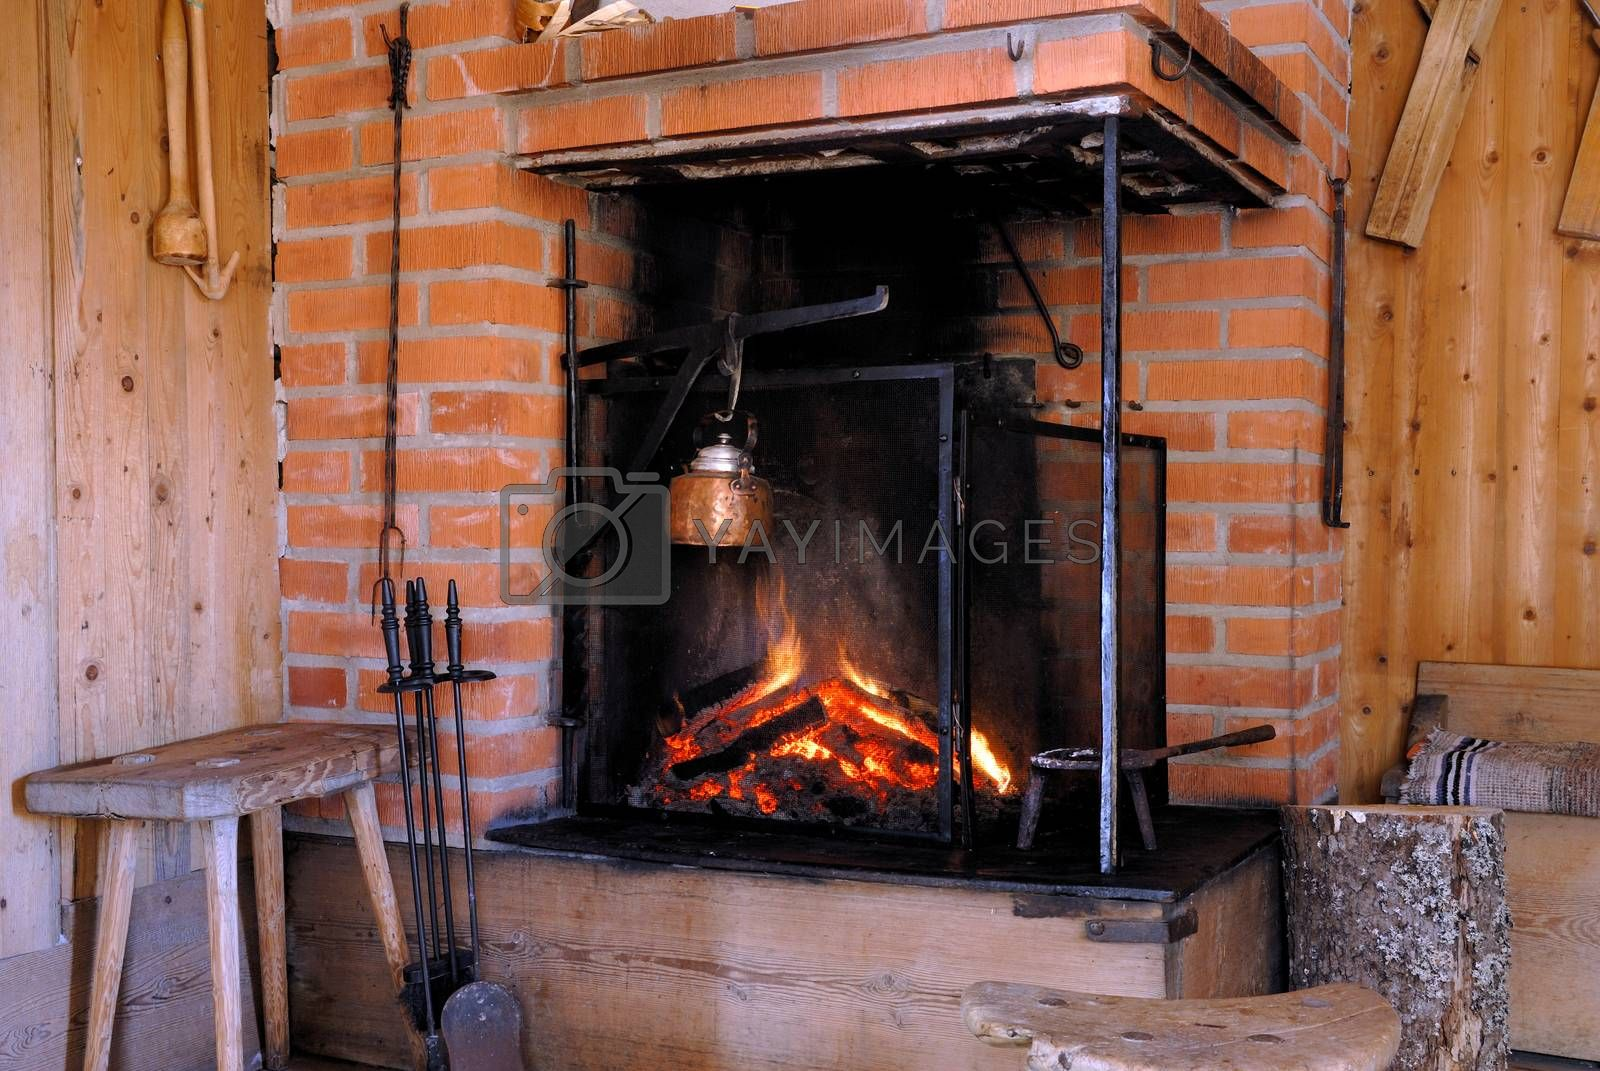 Wood fire in an old style wooden log cabin. A small house in Dalarna, Sweden.